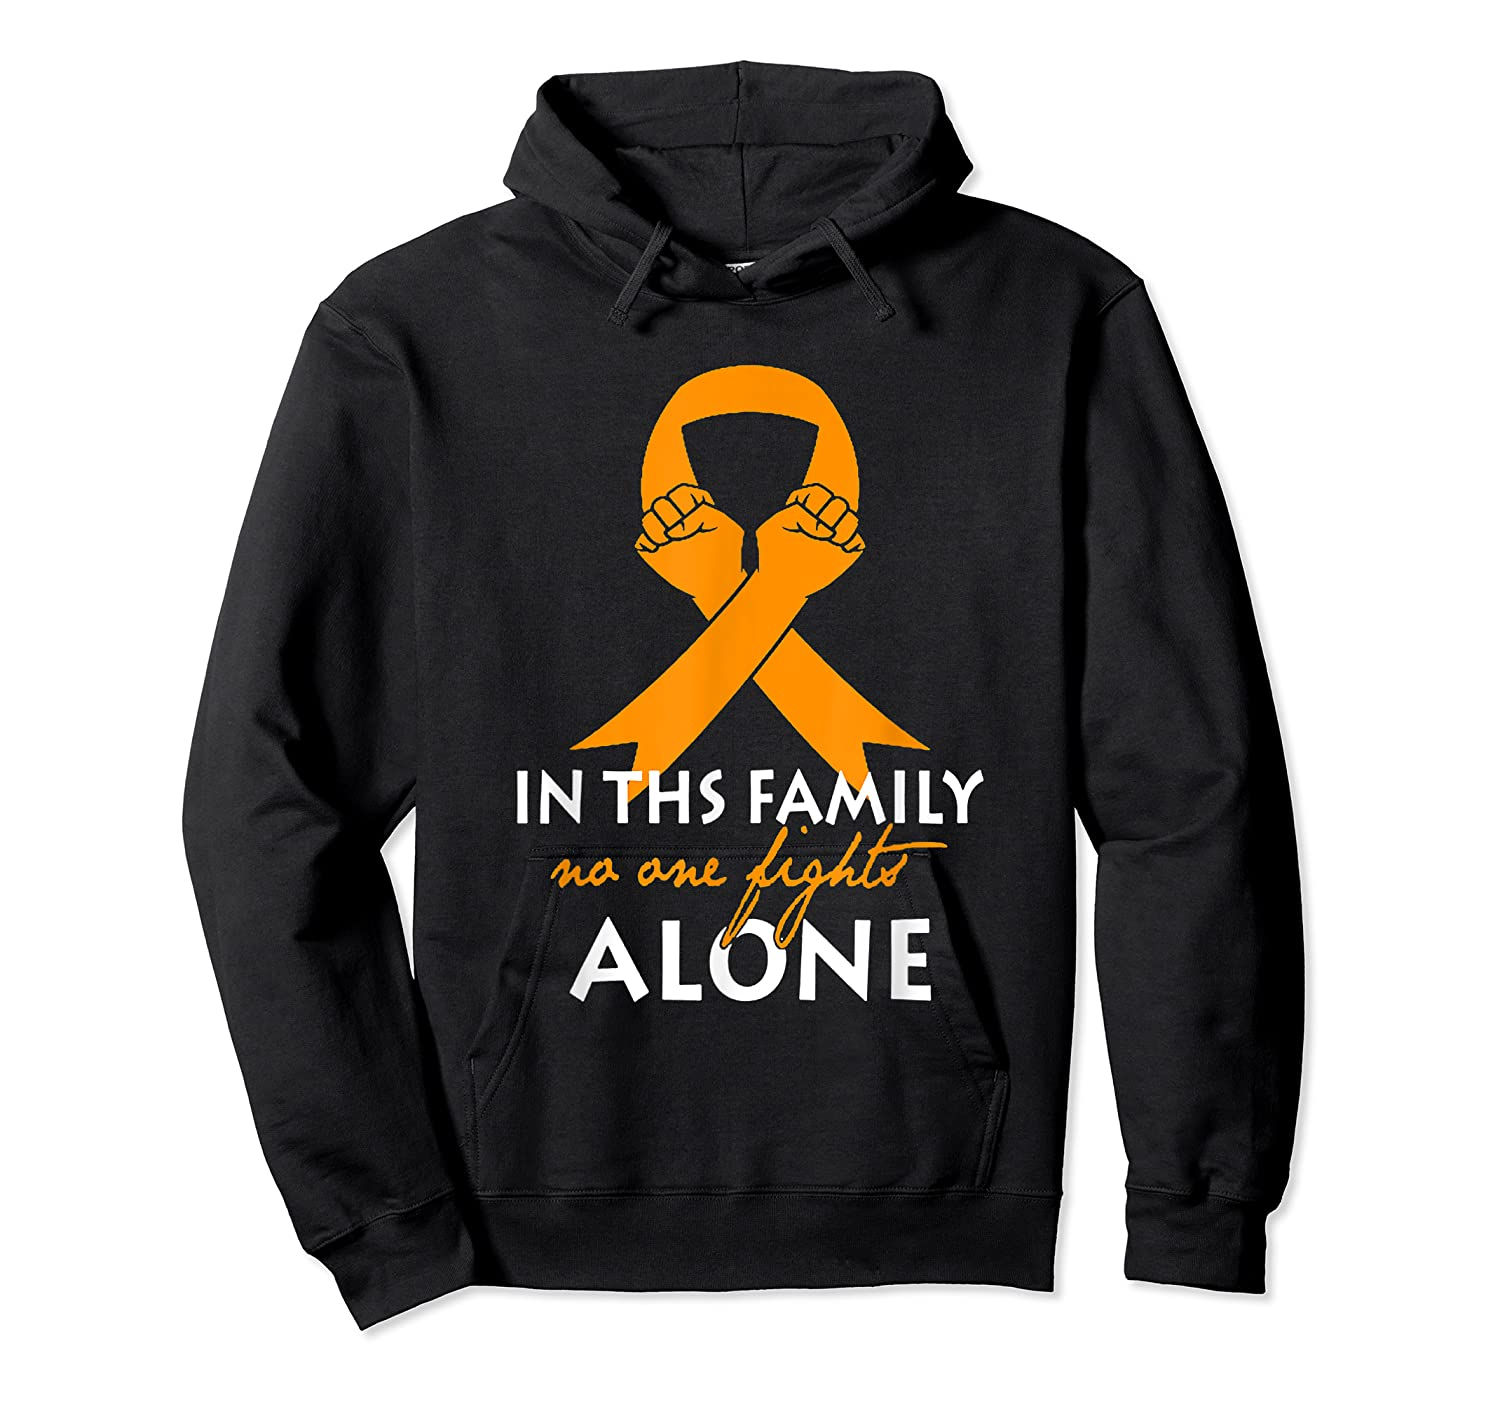 In This Family, No One Fight Alone Ms Shirts Unisex Pullover Hoodie